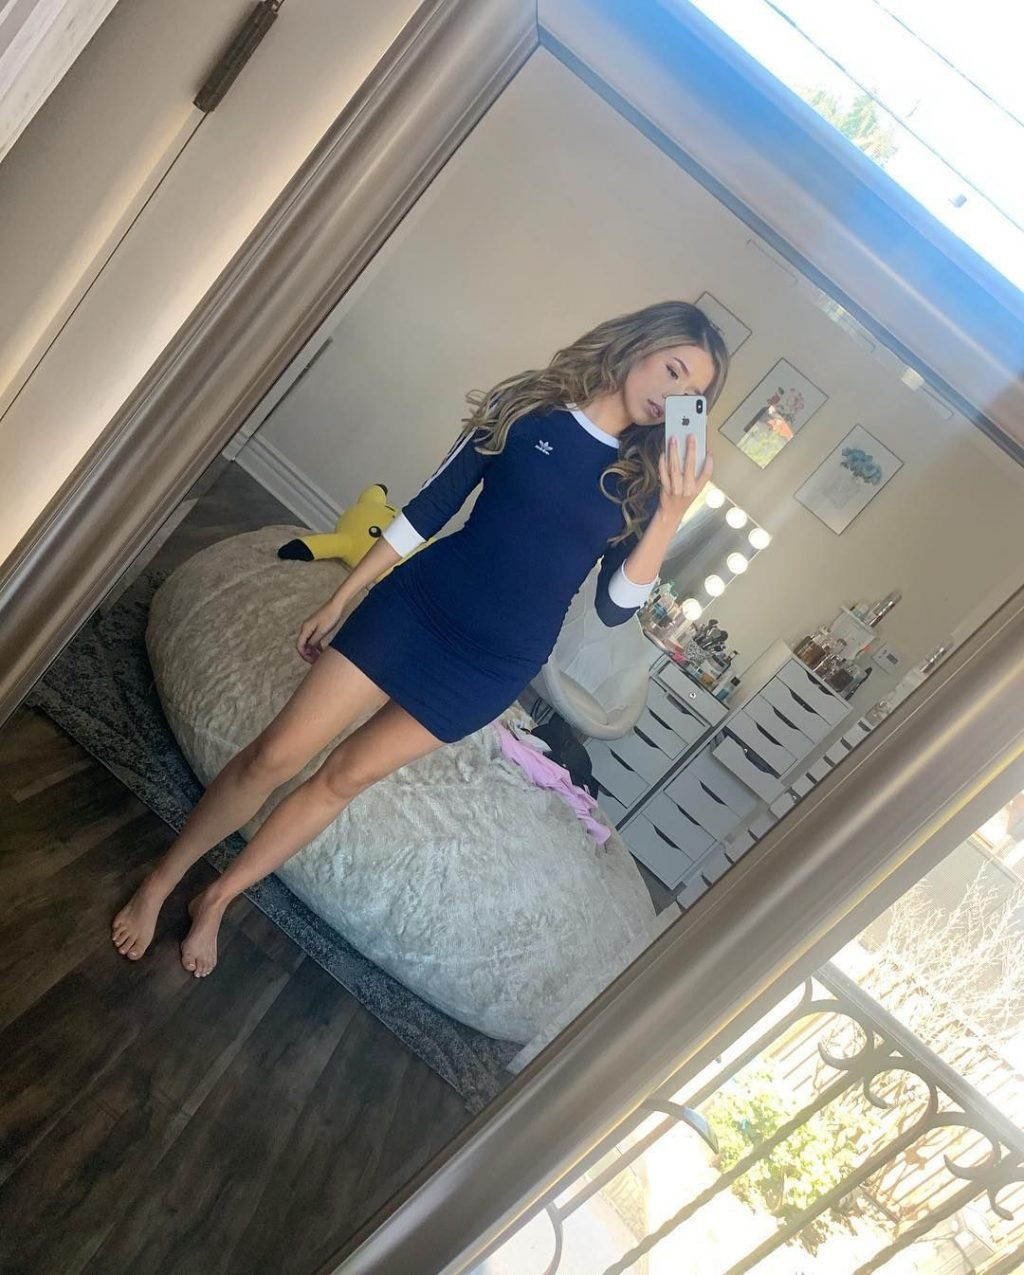 Pokimane Sexy (33 Photos + Video)